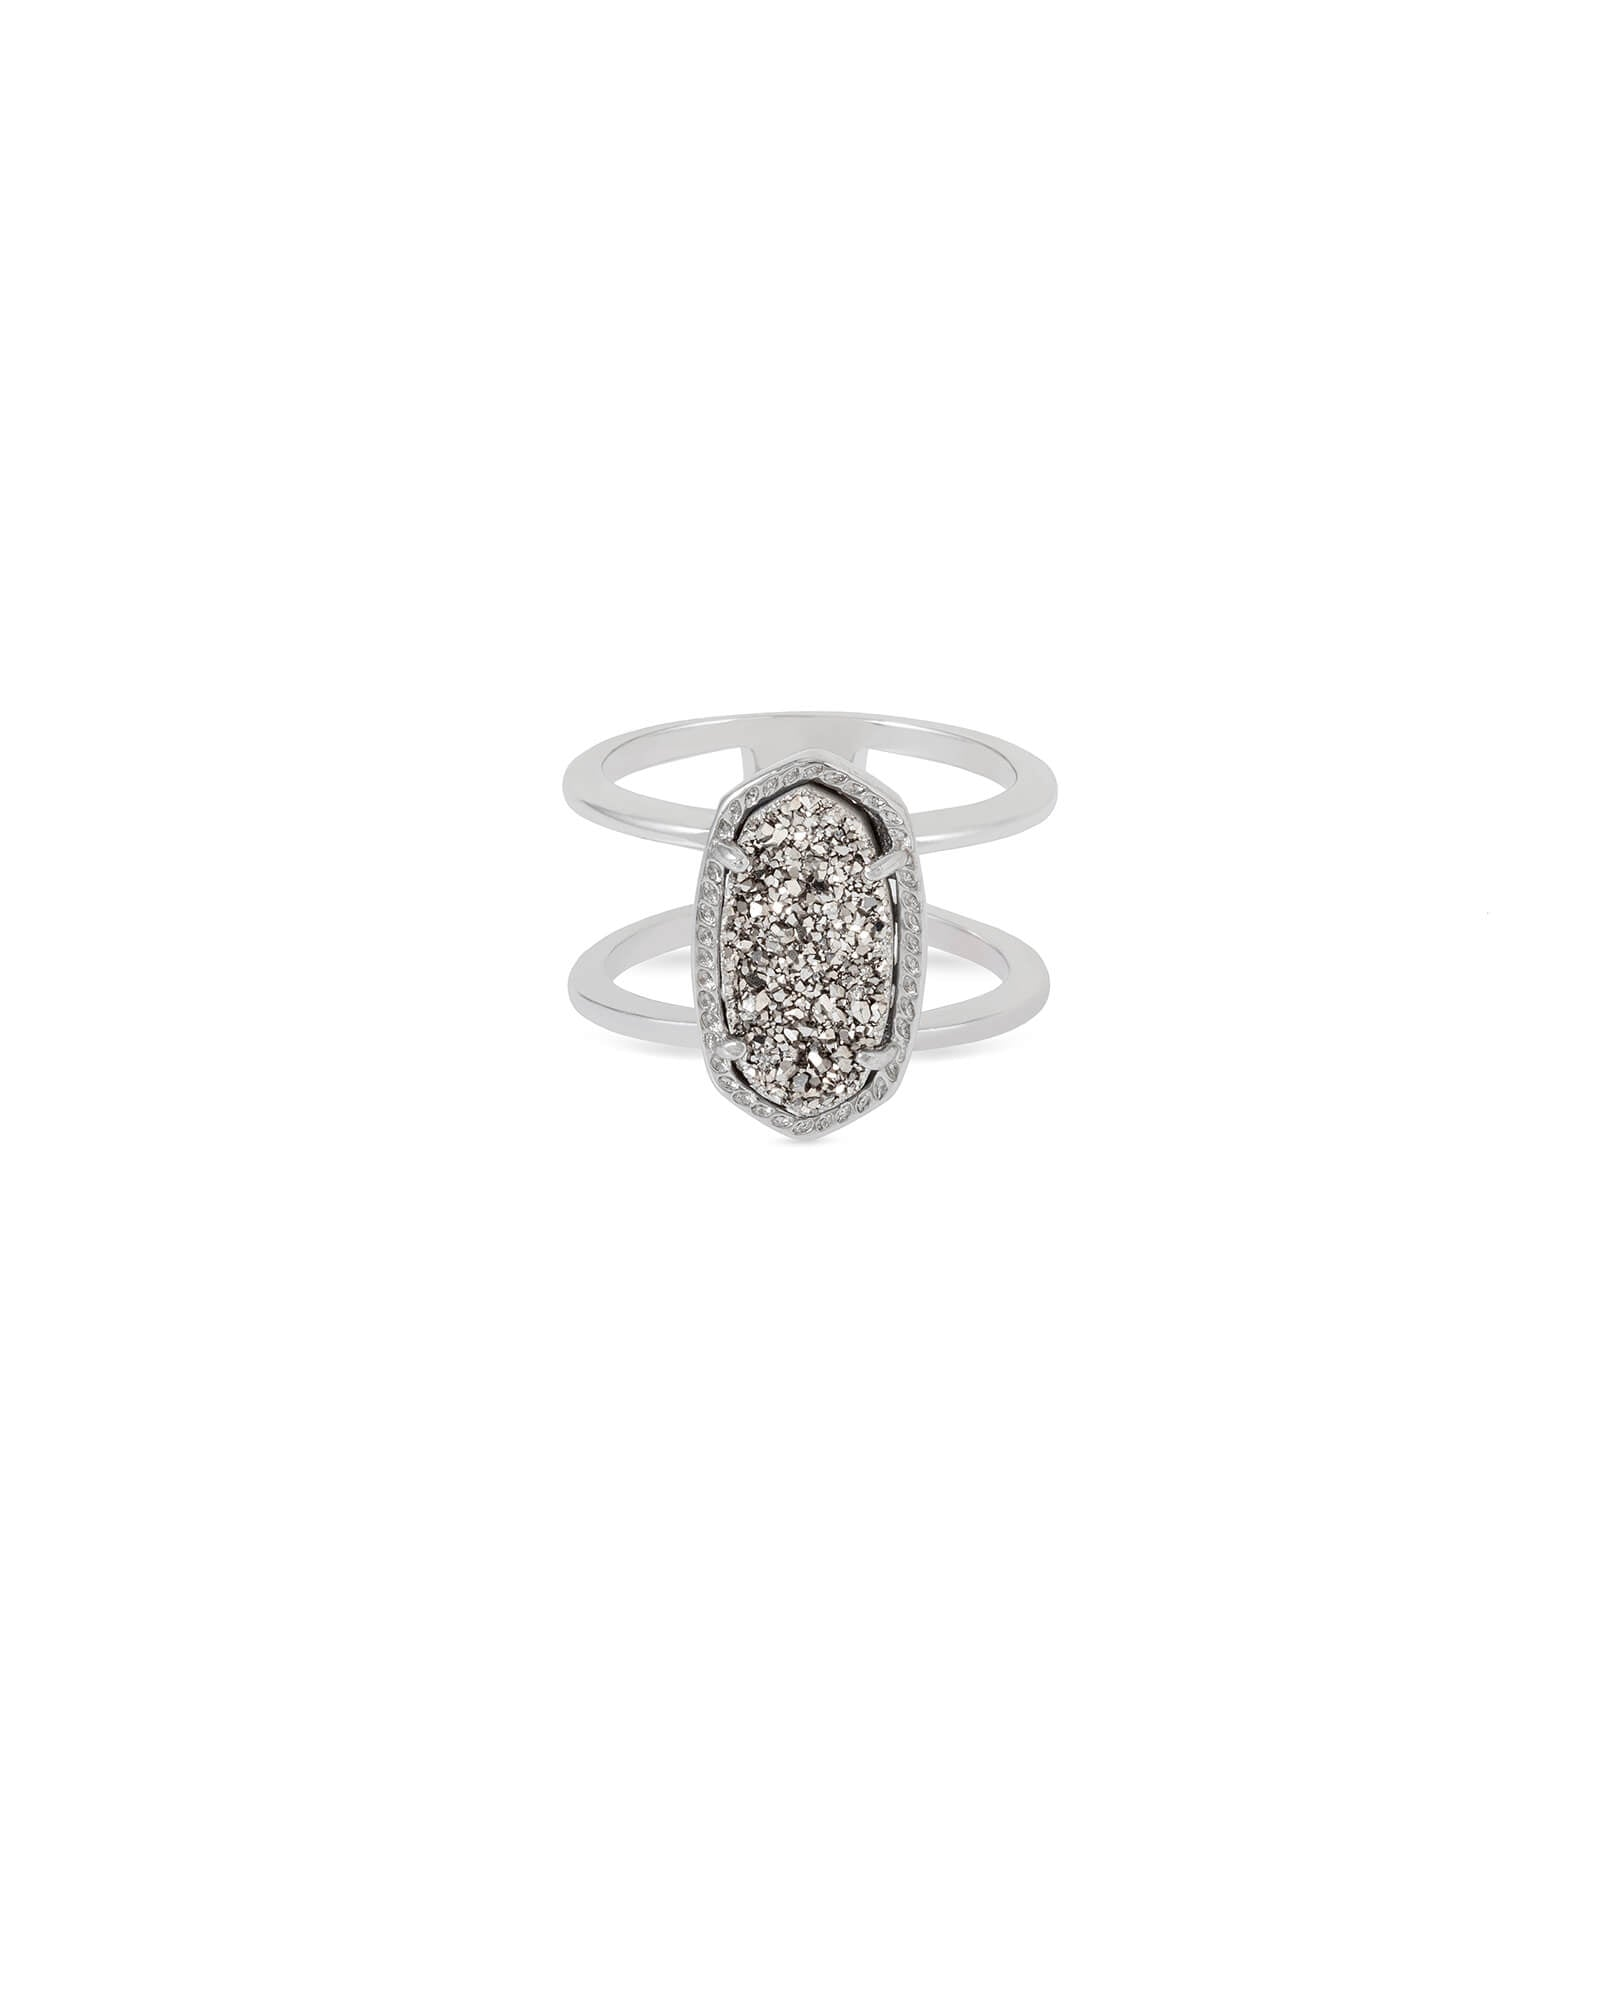 Elyse Ring in Silver / Platinum Drusy